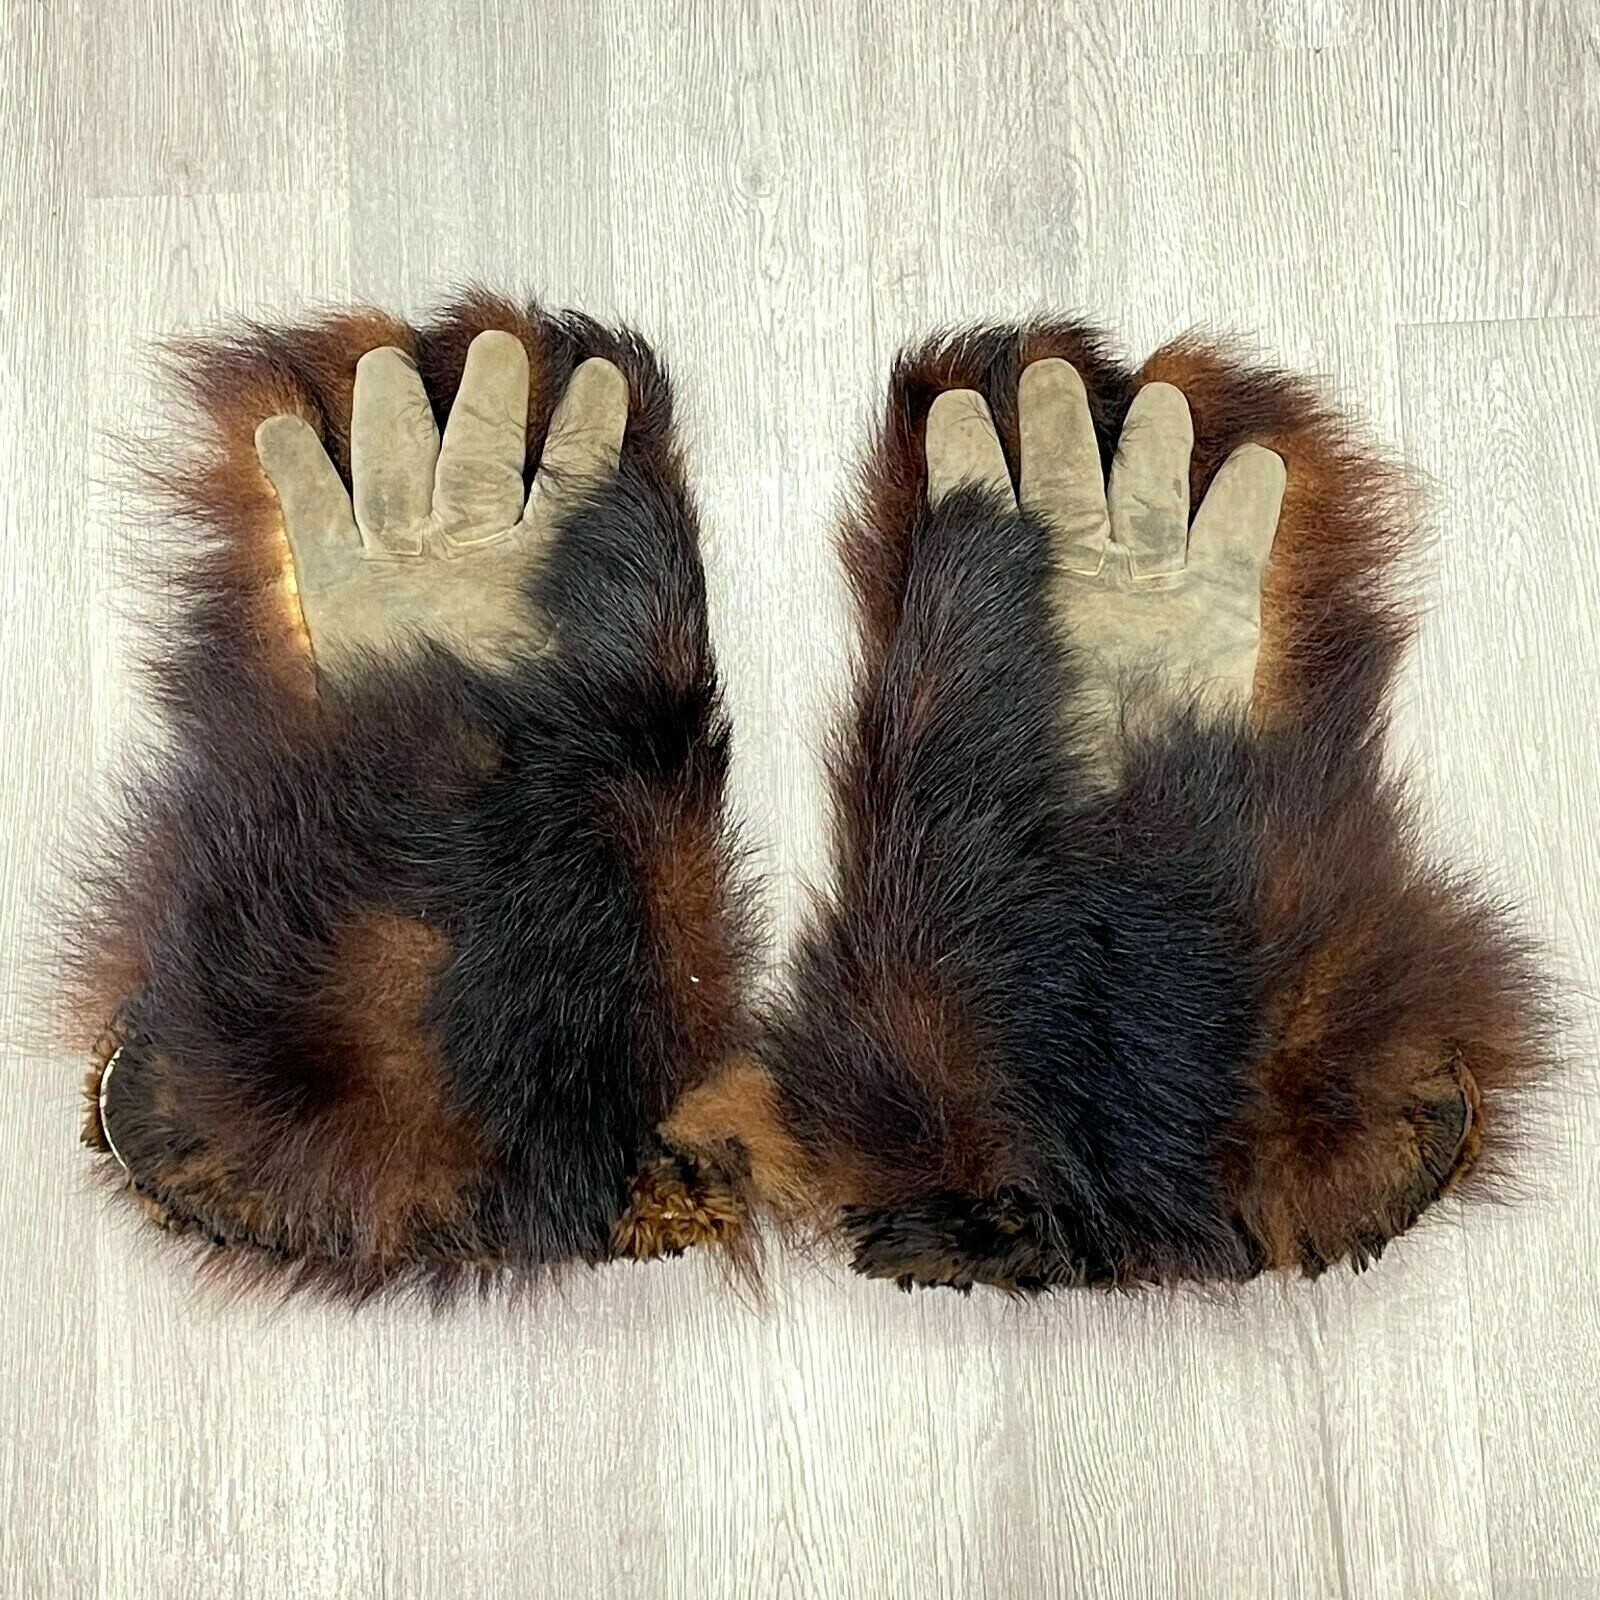 Antique Bear Skin Fur Leather Stagecoach Driver Gloves